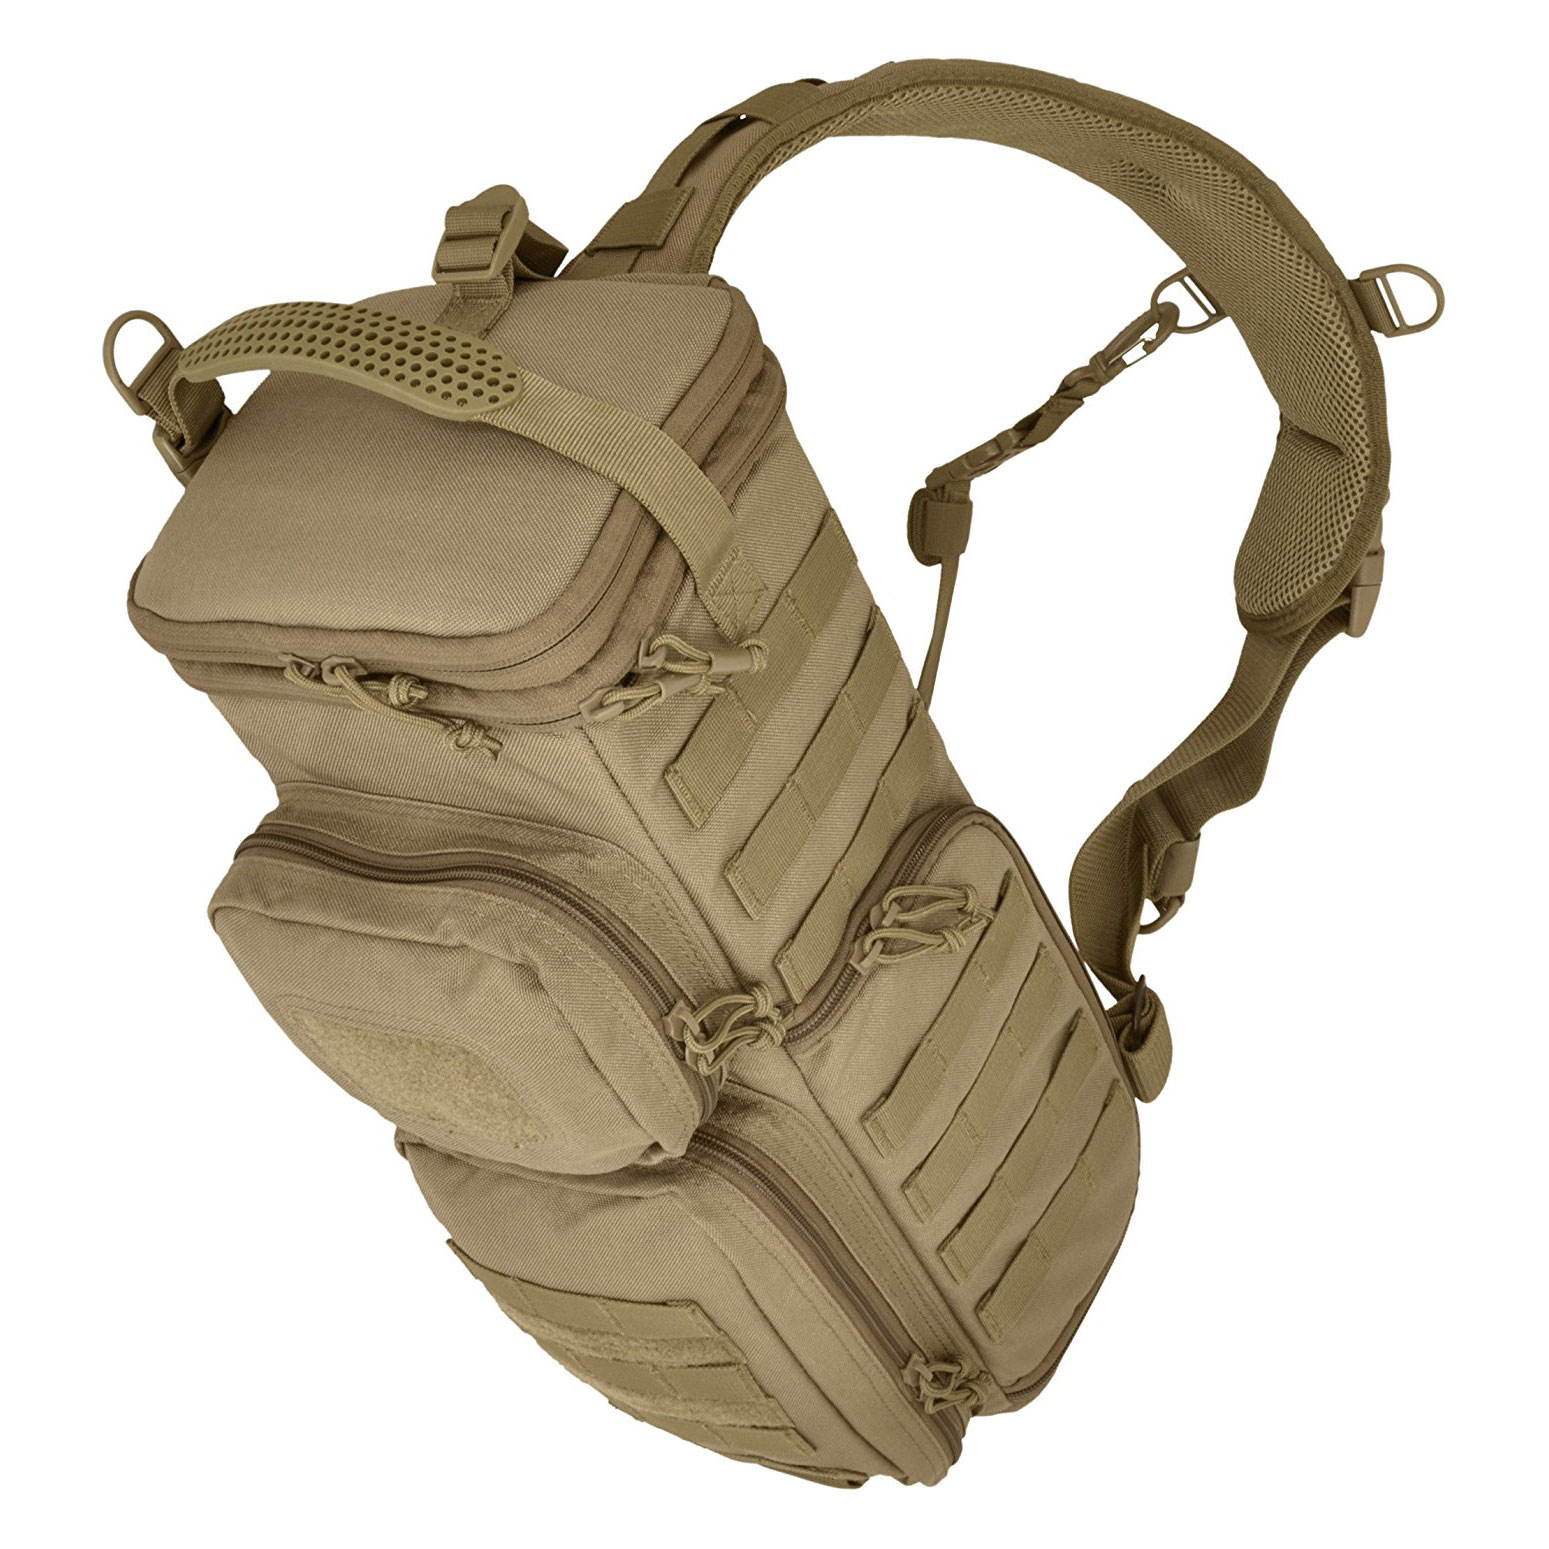 Hazard 4 Photo Recon Modular MOLLE Camera & Optics Backpack Sling Pack, Coyote